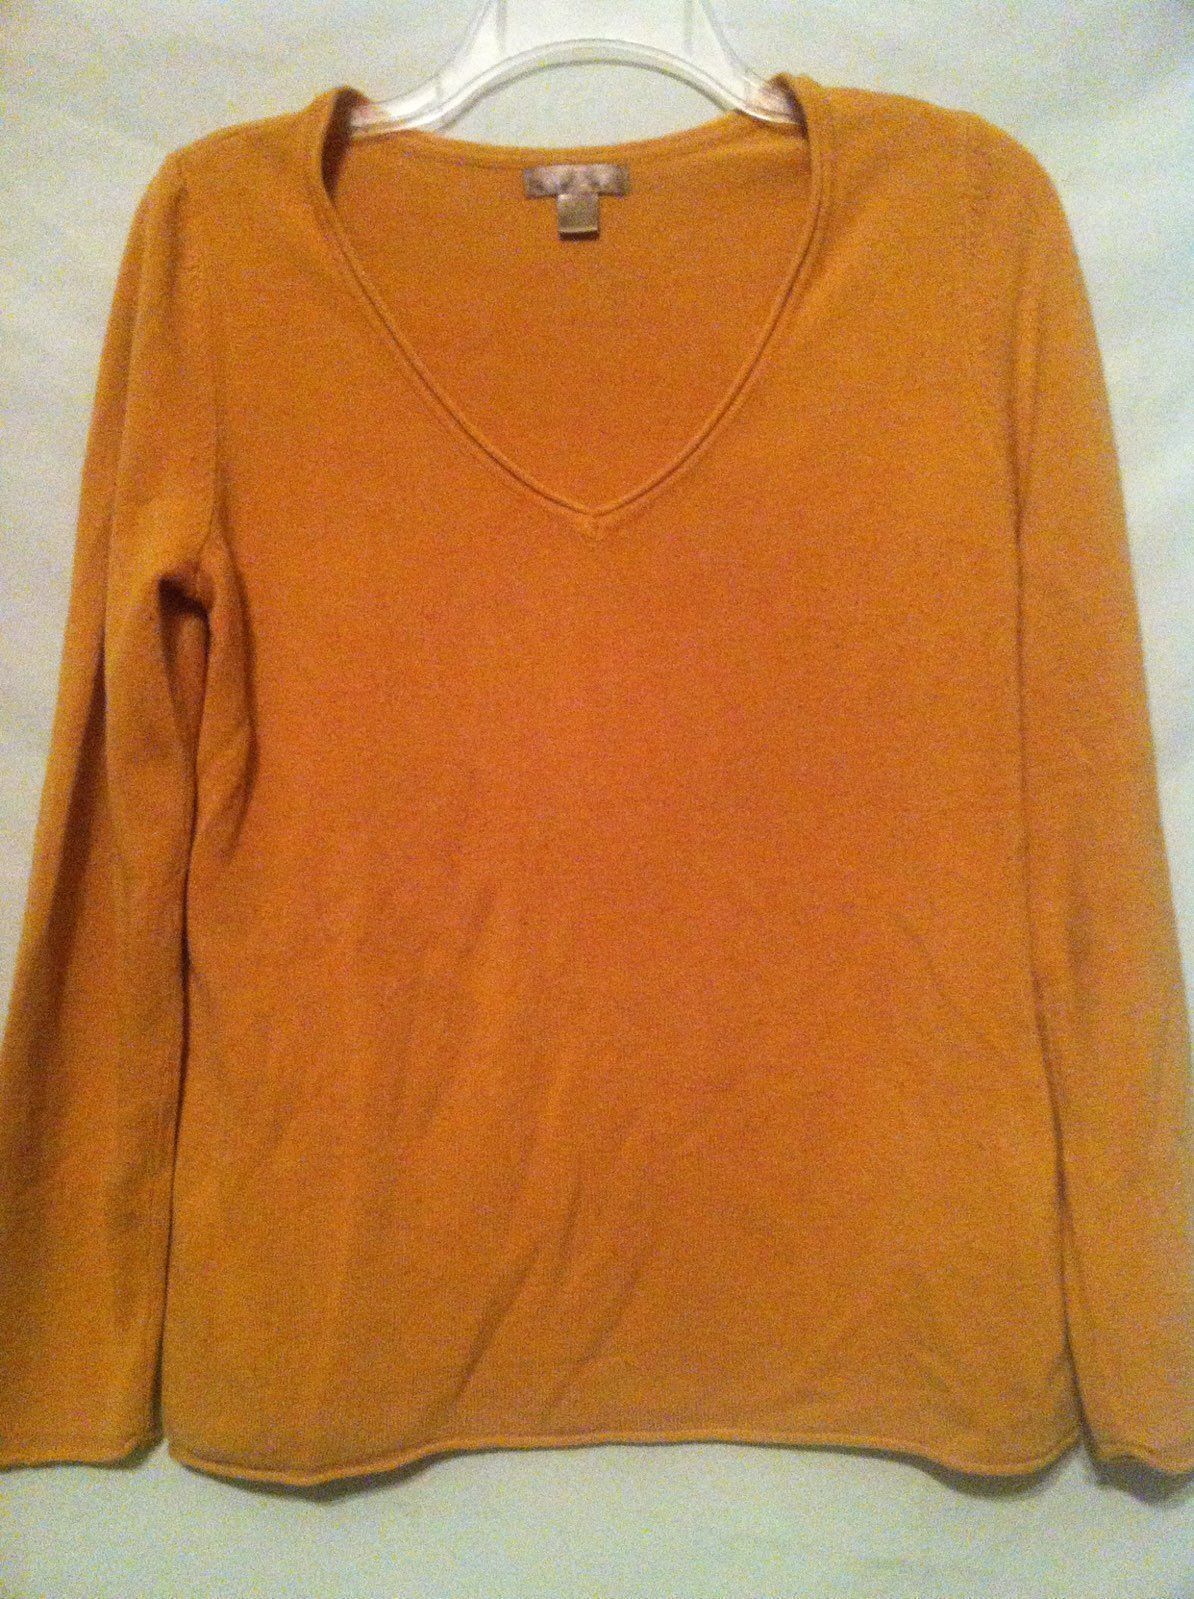 Dark Yellow V Neck Sweater Sz Med - Mercari: BUY & SELL THINGS YOU ...